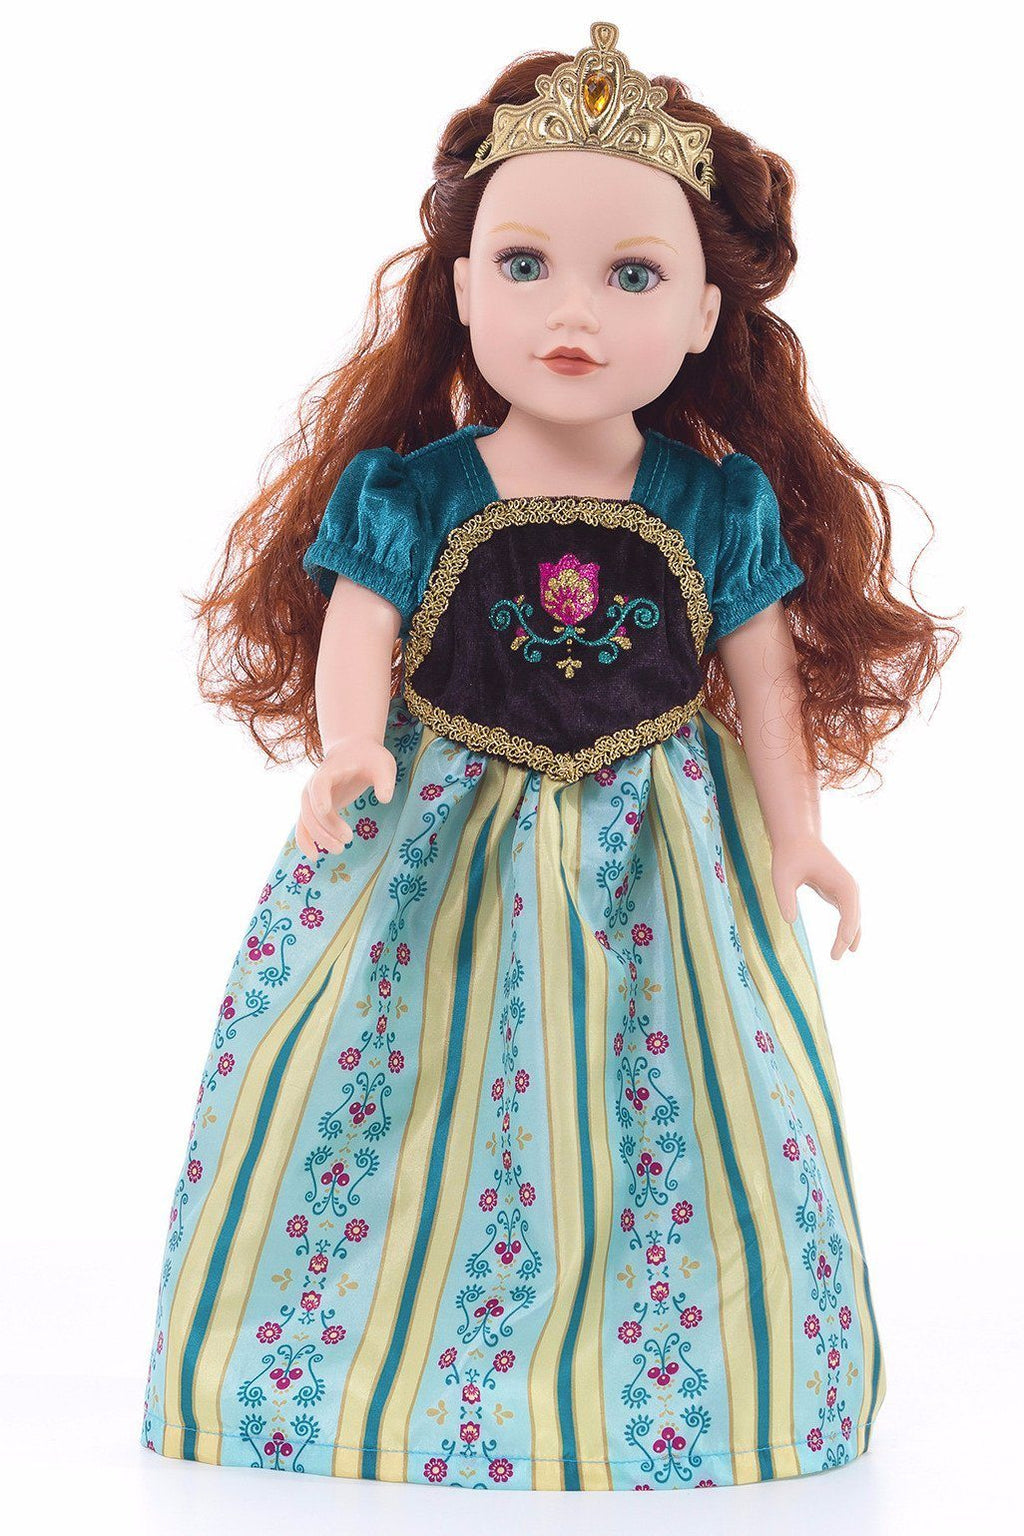 Doll Dresses & Accessories - Doll Dress Scandinavian Princess Coronation